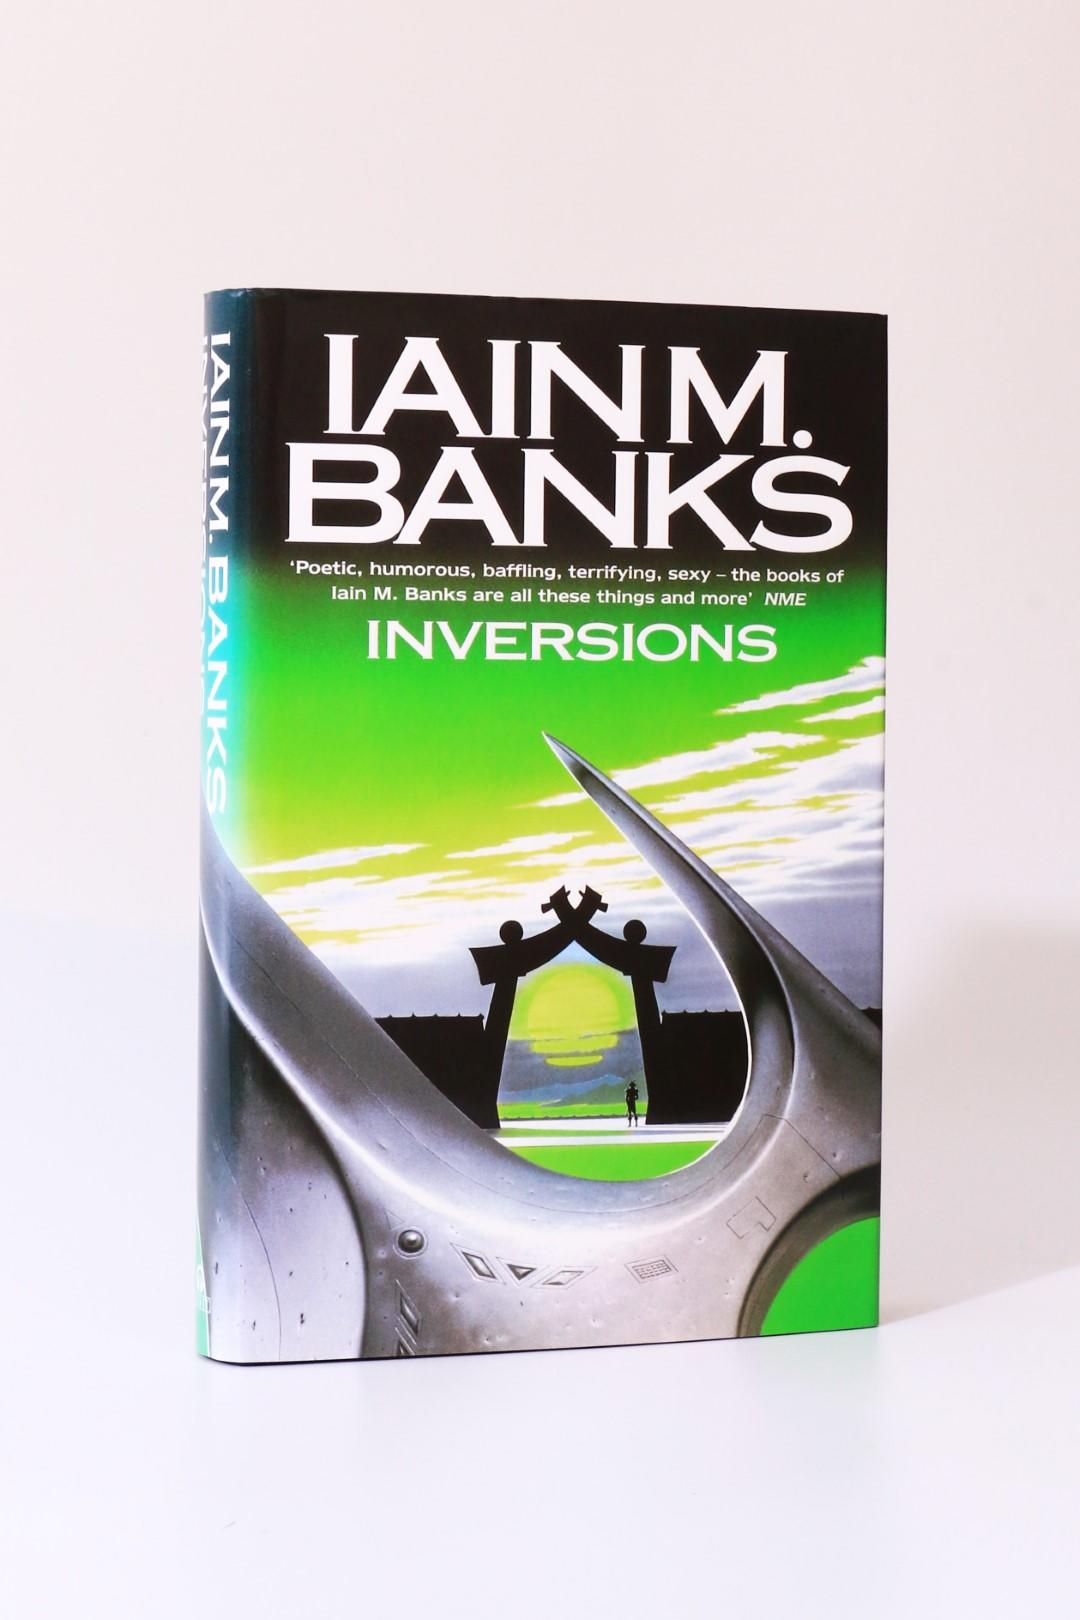 Iain M. Banks - Inversions - Orbit, 1998, Signed First Edition.